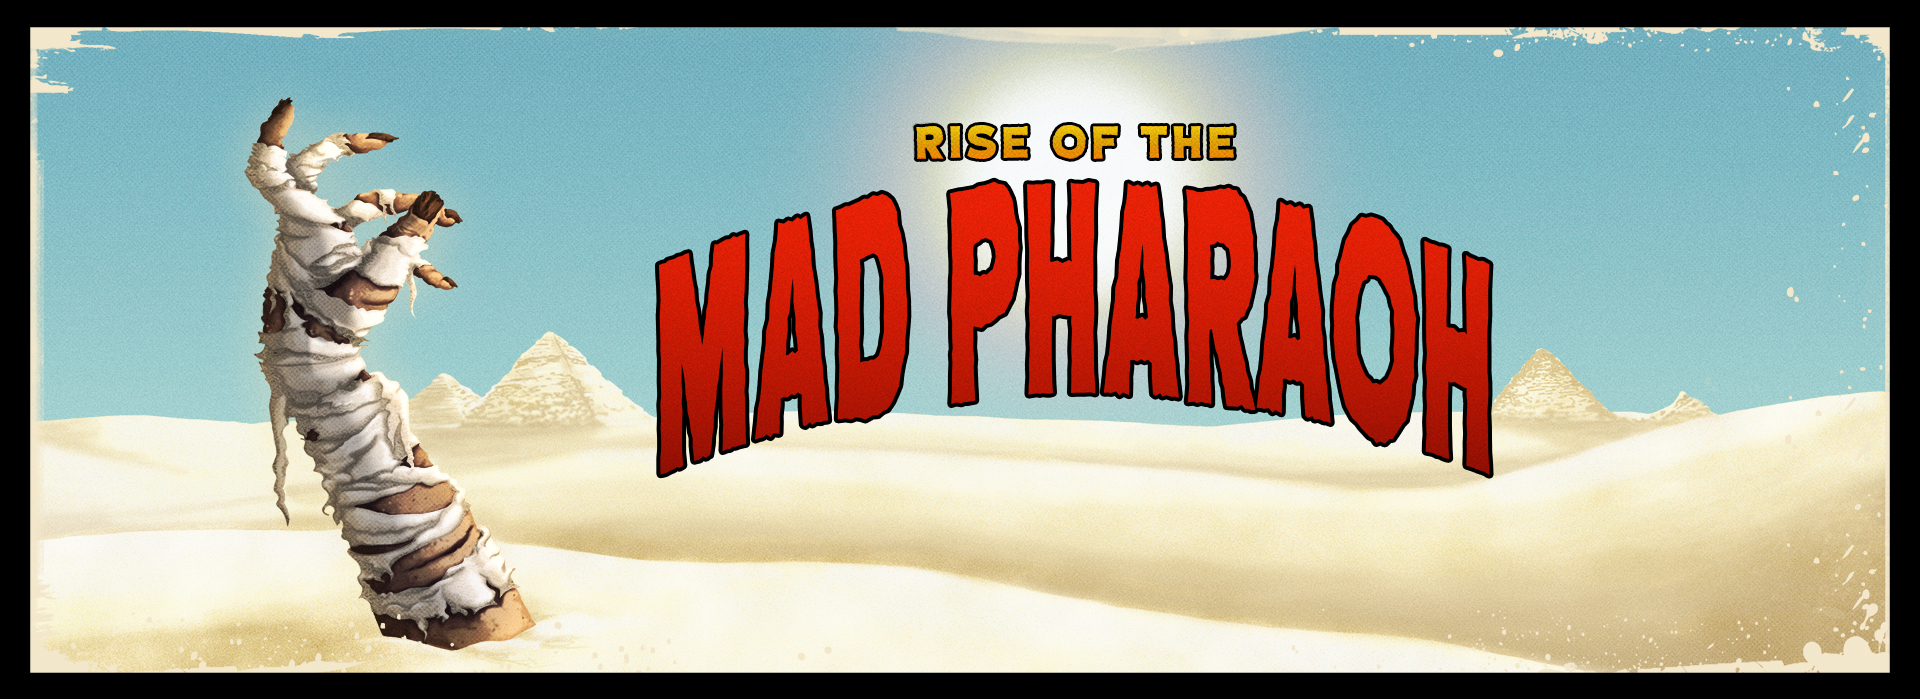 Rise of the Mad Pharao